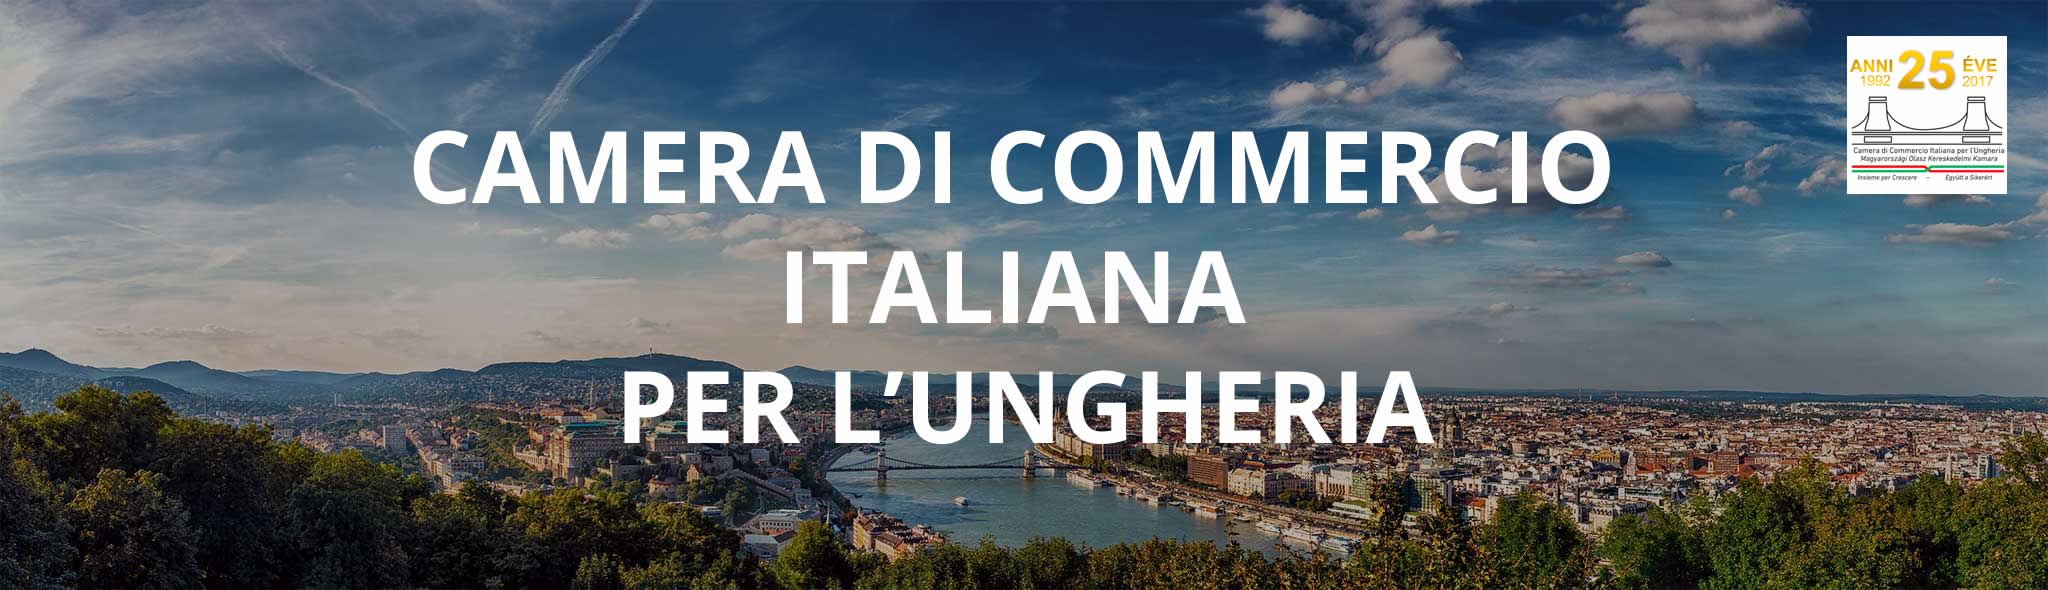 Camera di Commercio Italiana per l'Ungheria